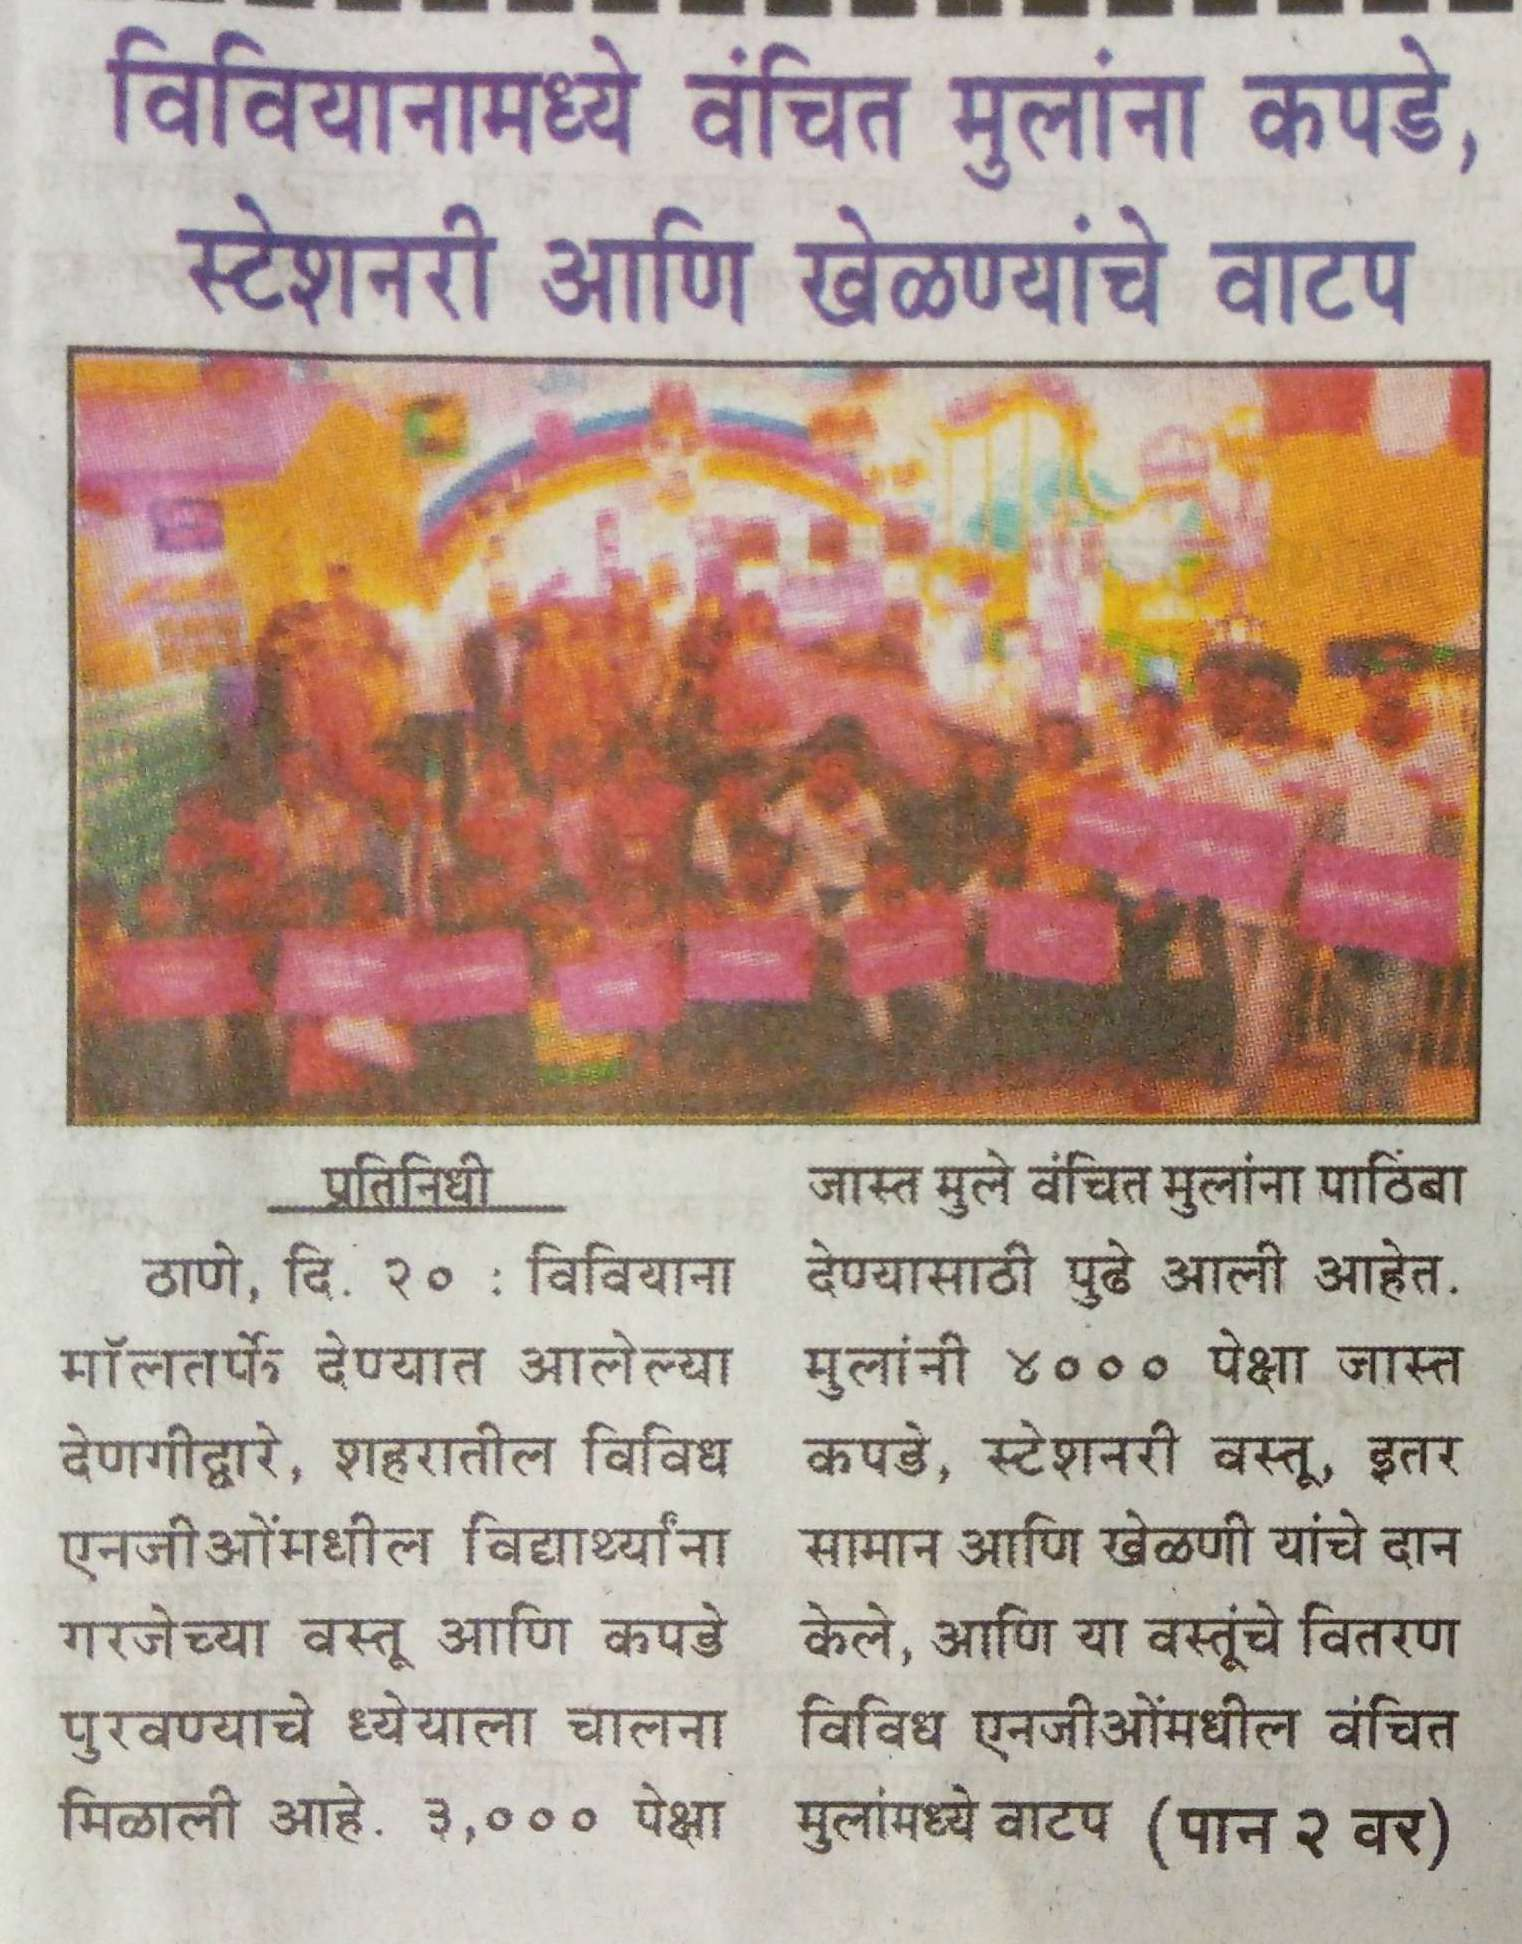 CSR activity by the Mall featured in Newspaper - Viviana Mall